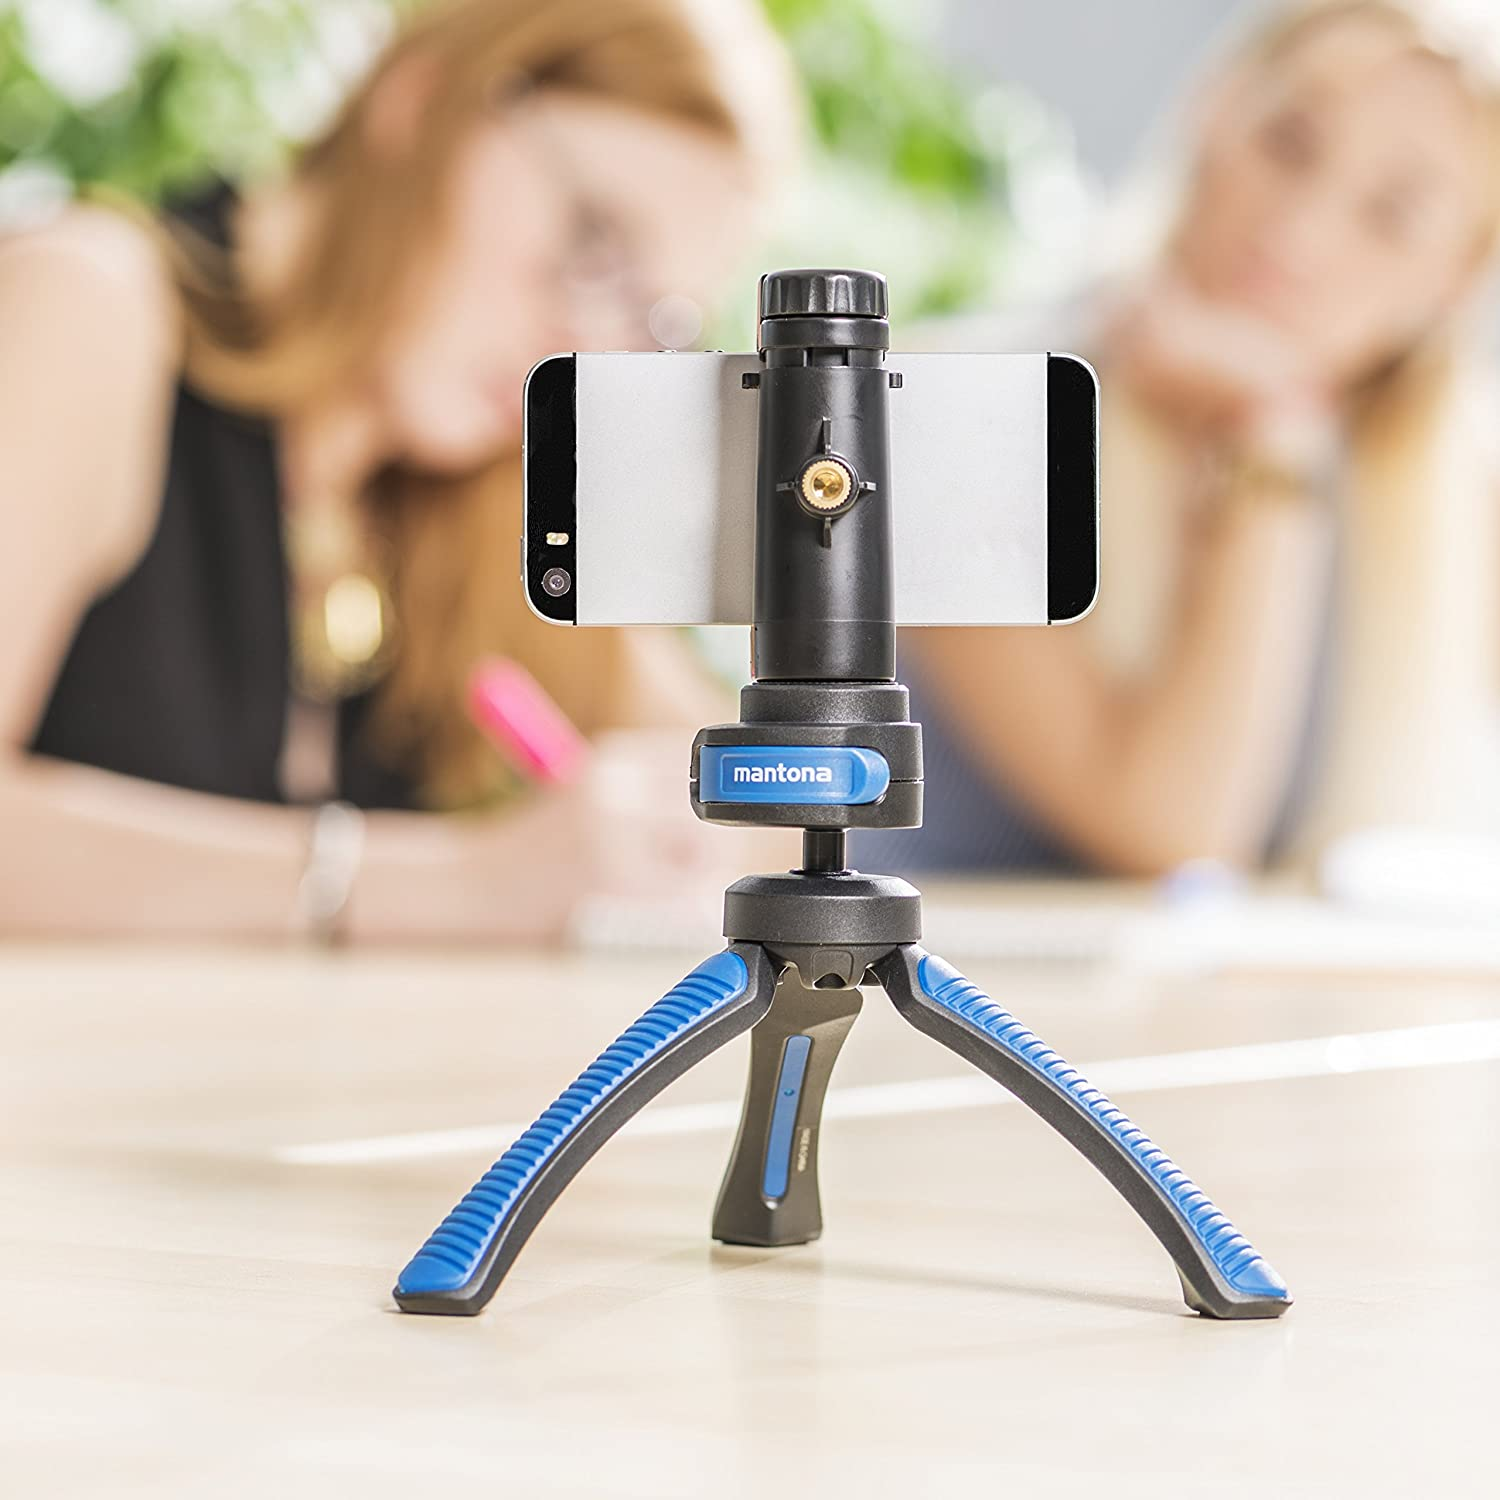 Spirit Level and Hands Chlafe/ /1//4/Inch Connector /Ocean Blue Mantona Kaleido Mini 3-Leg Table and Hand Tripod with Ball Head/